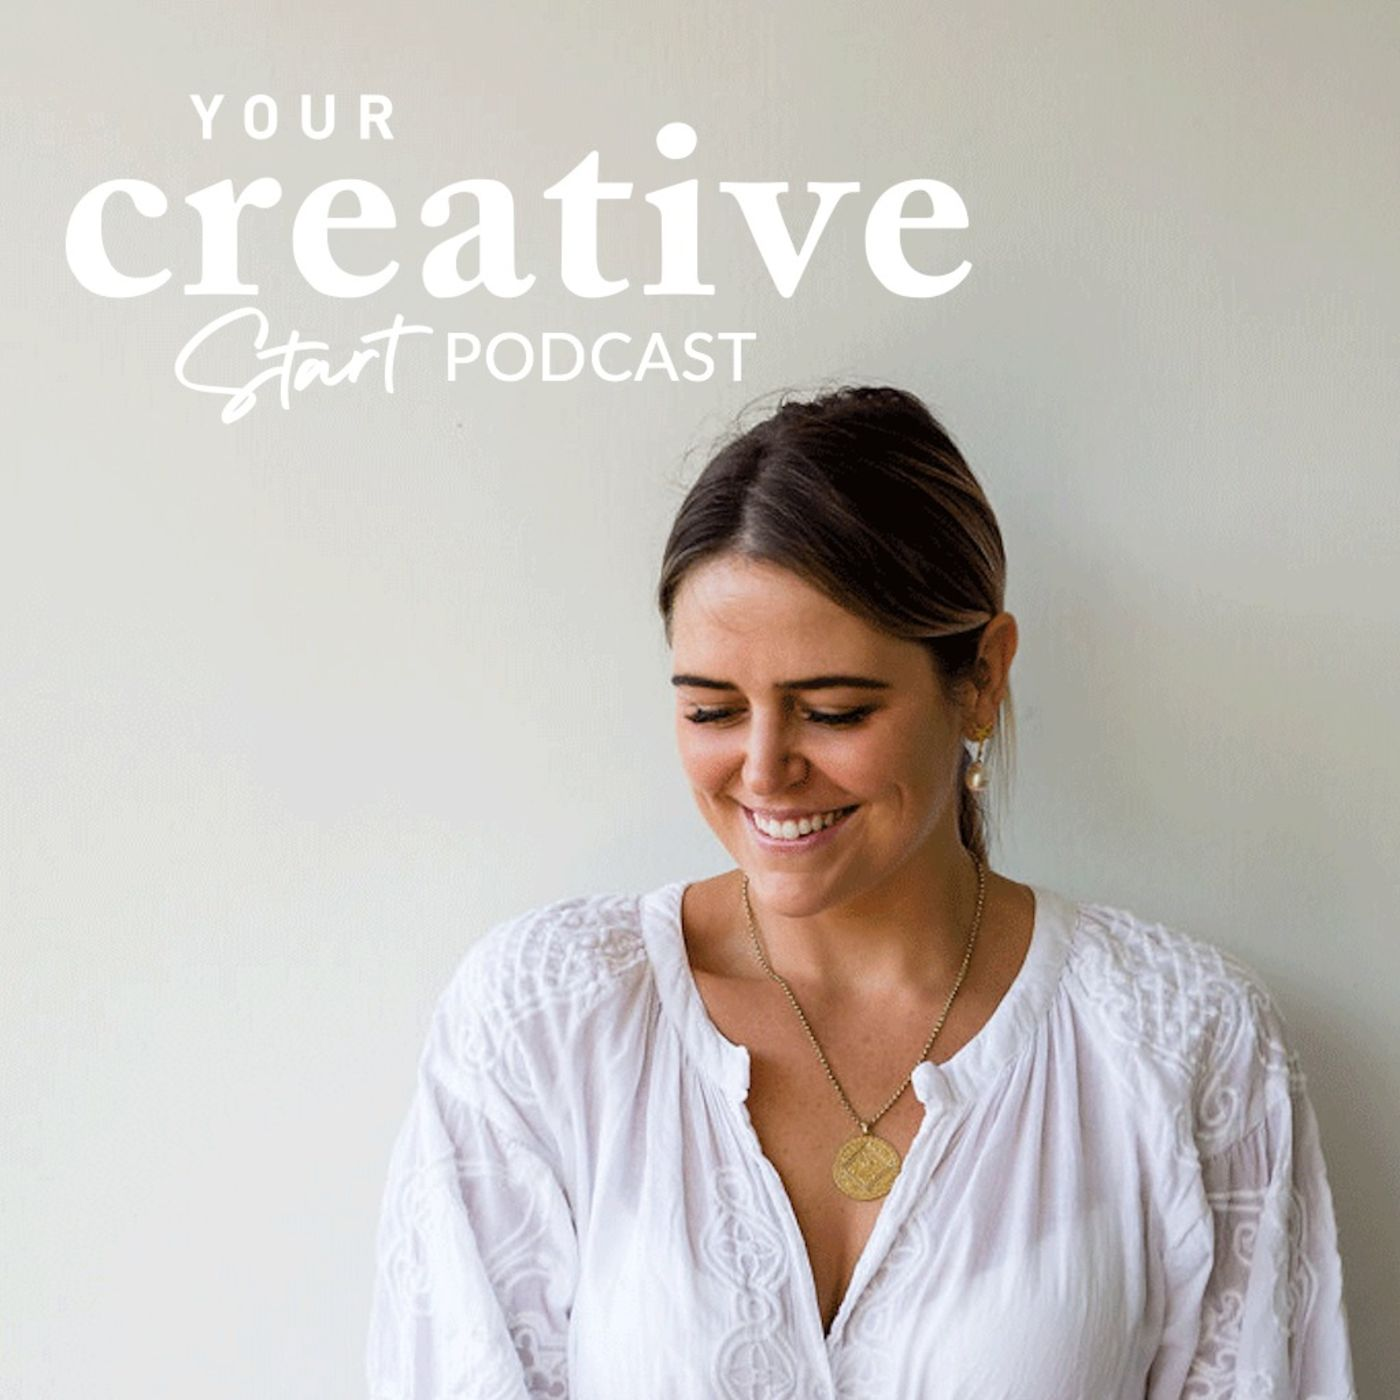 Your Creative StartHosted by Jaharn Giles - Jaharn interviews amazing entrepreneurs who have thriving businesses to talk about their journeys. She interviews designers, jewelers, coaches, bloggers, product designers and the list goes on.